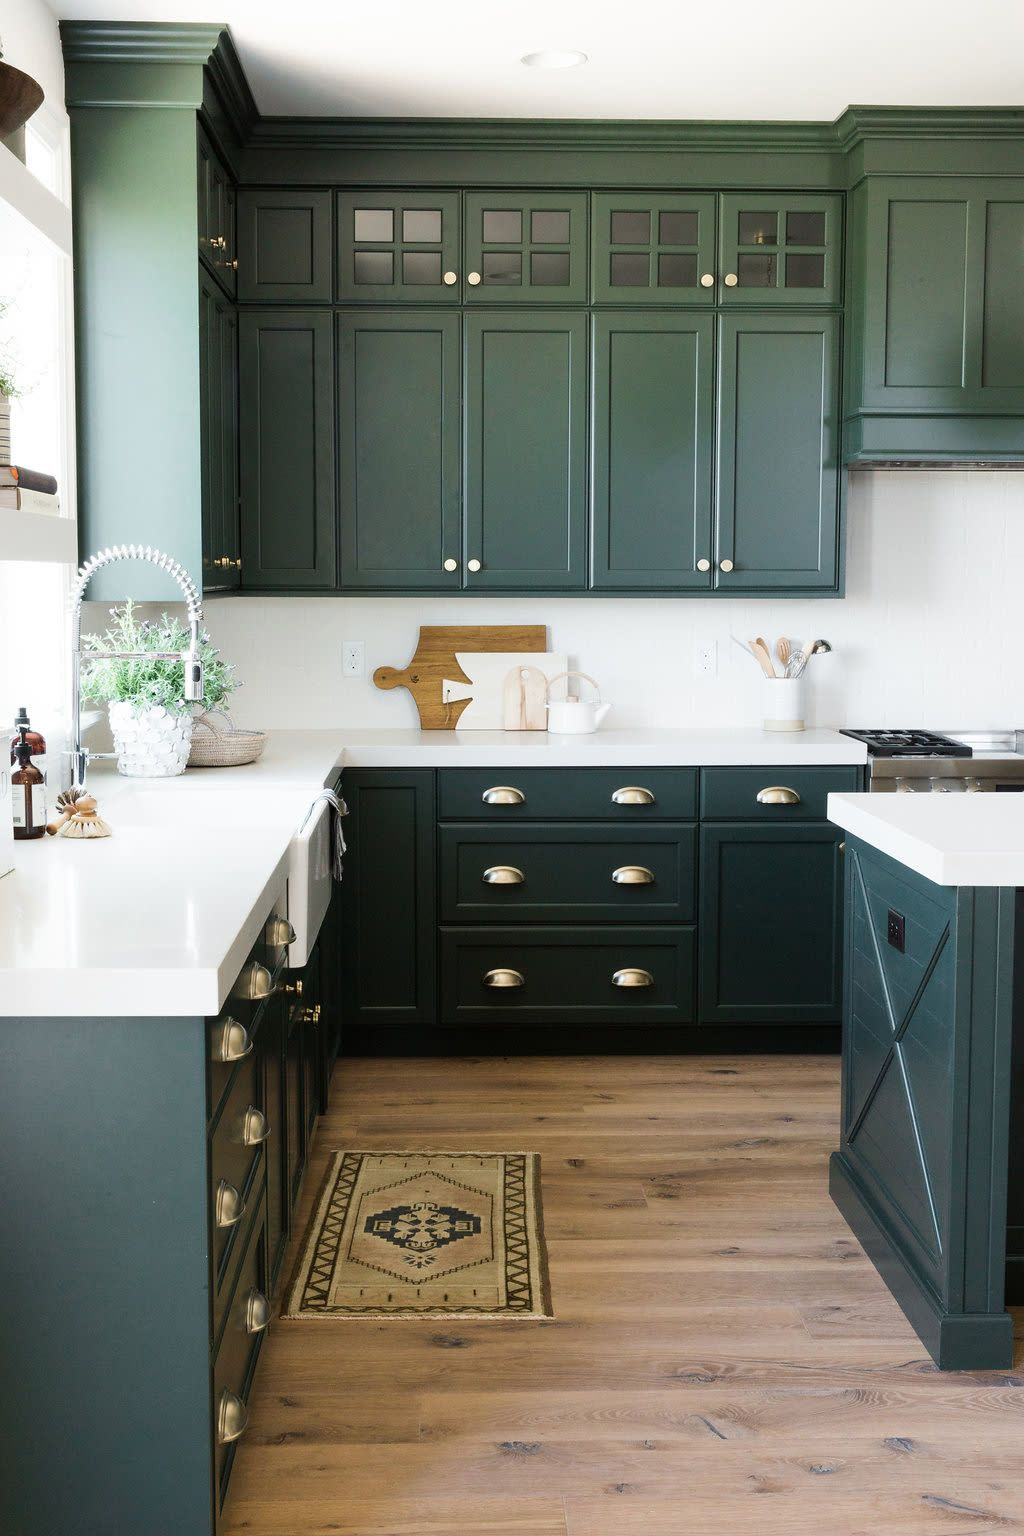 6 Glass Kitchen Cabinets For Every Kind Of Style In 2020 Kitchen Cabinet Inspiration Dark Green Kitchen Green Kitchen Cabinets